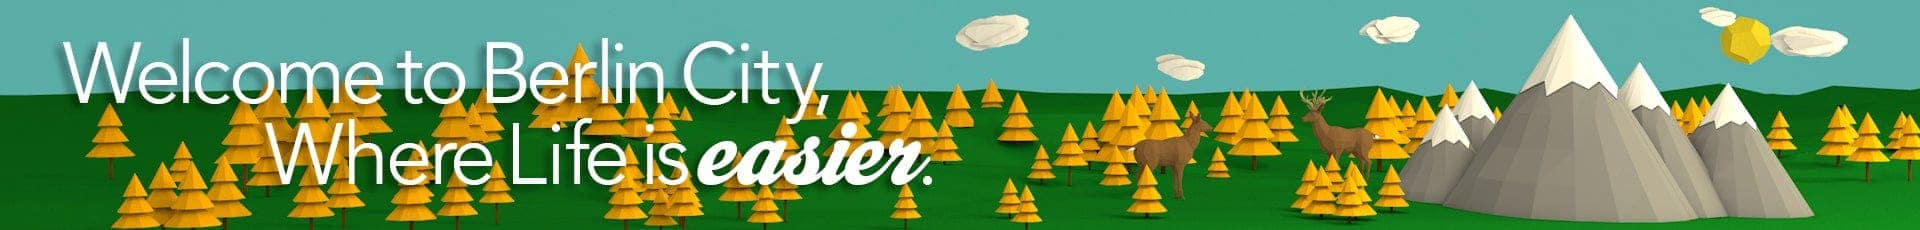 Life is easier banner. A bunch of yellow trees